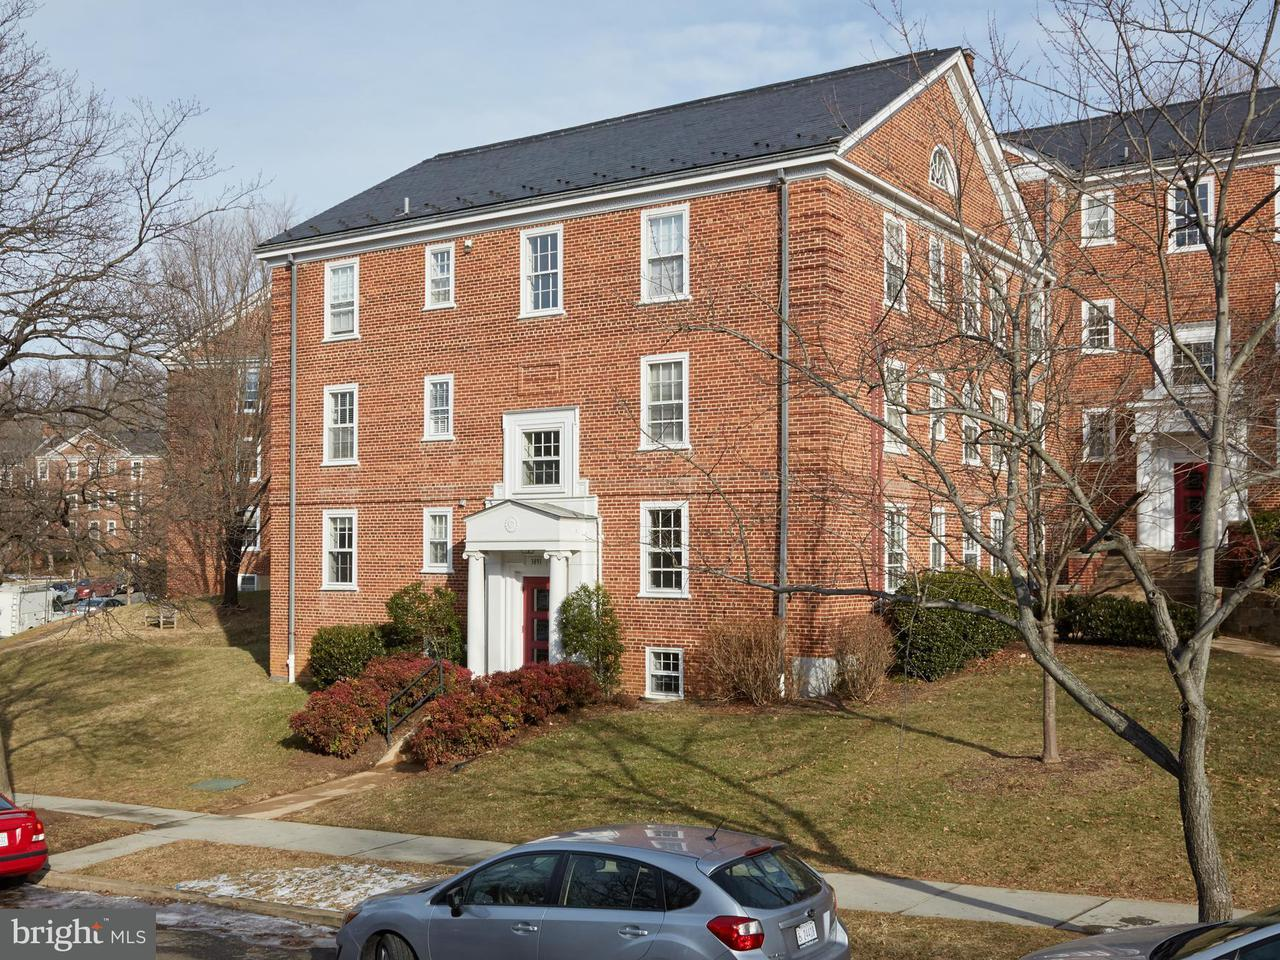 Condominium for Sale at 3891 Porter St Nw #A301 3891 Porter St Nw #A301 Washington, District Of Columbia 20016 United States